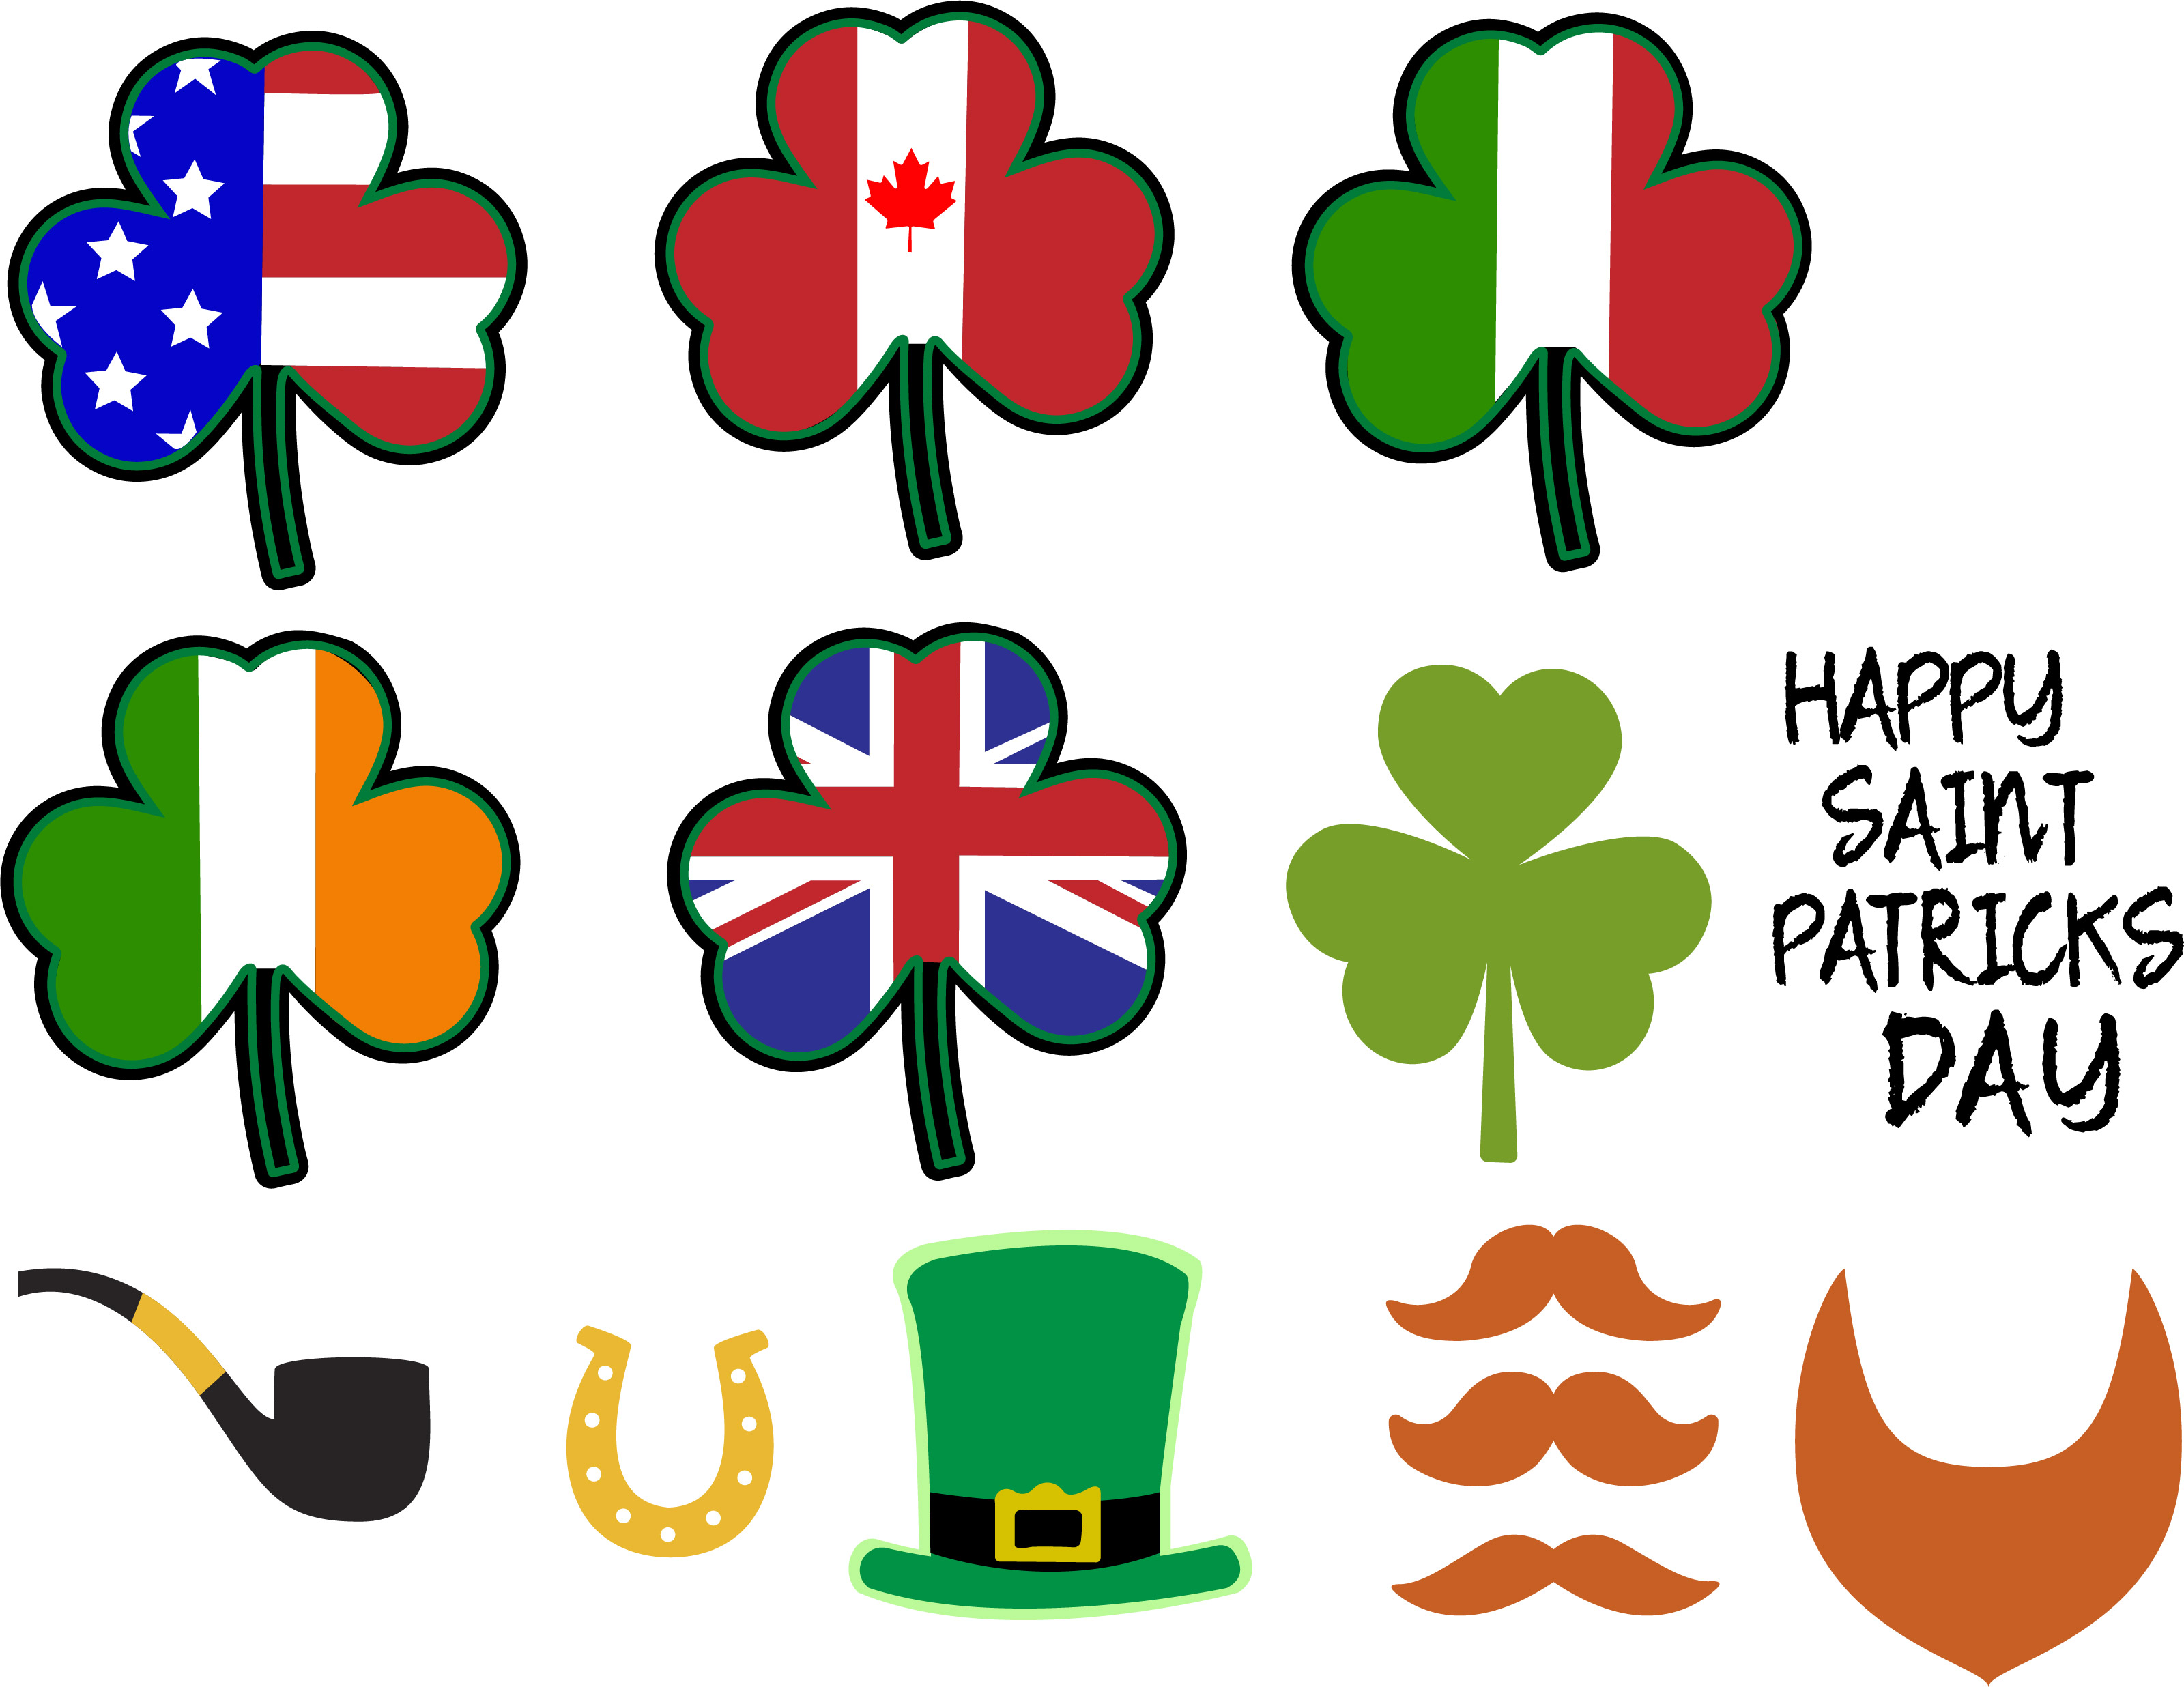 Saint Patrick's Day, patrick, Saint Patrick's, happy, svg, example image 2